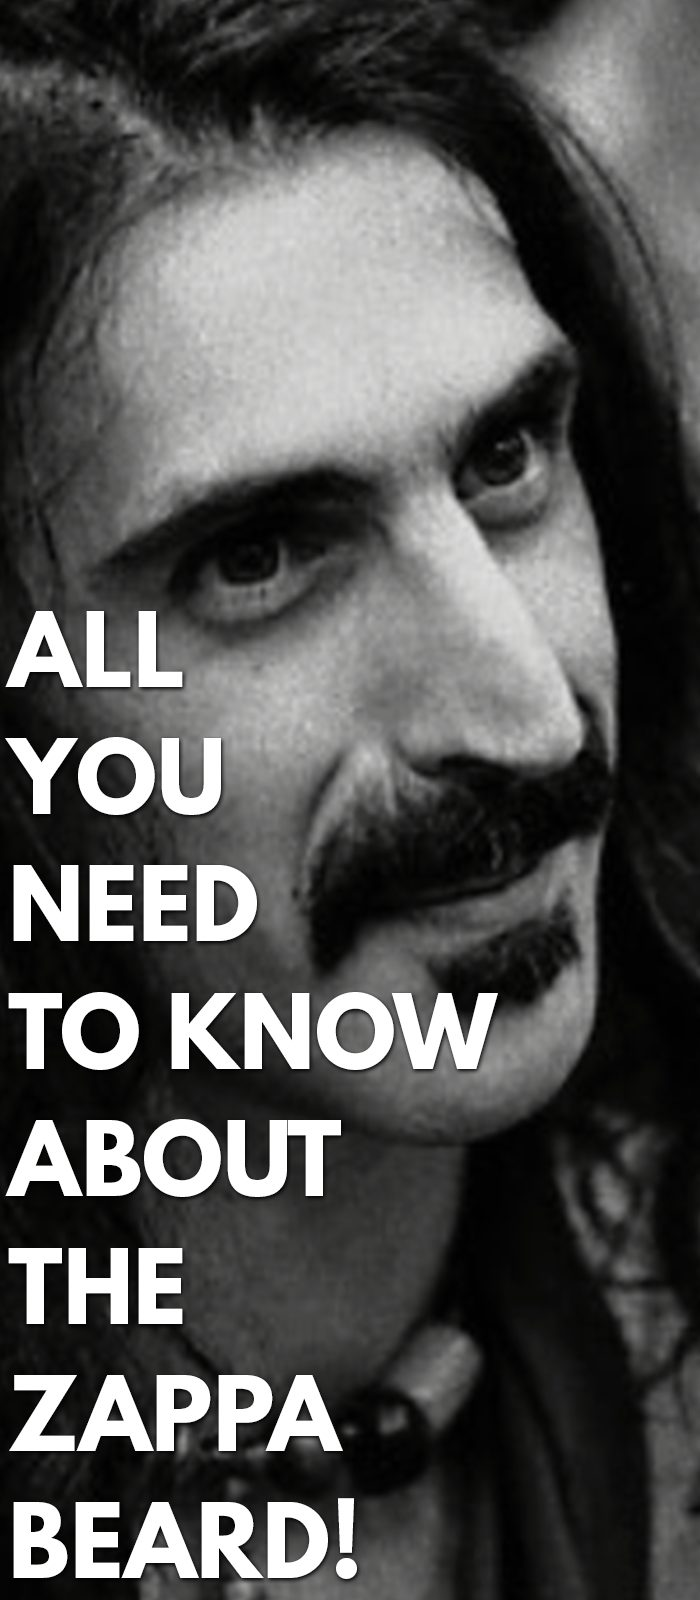 All-You-Need-To-Know-About-The-Zappa-Beard!.